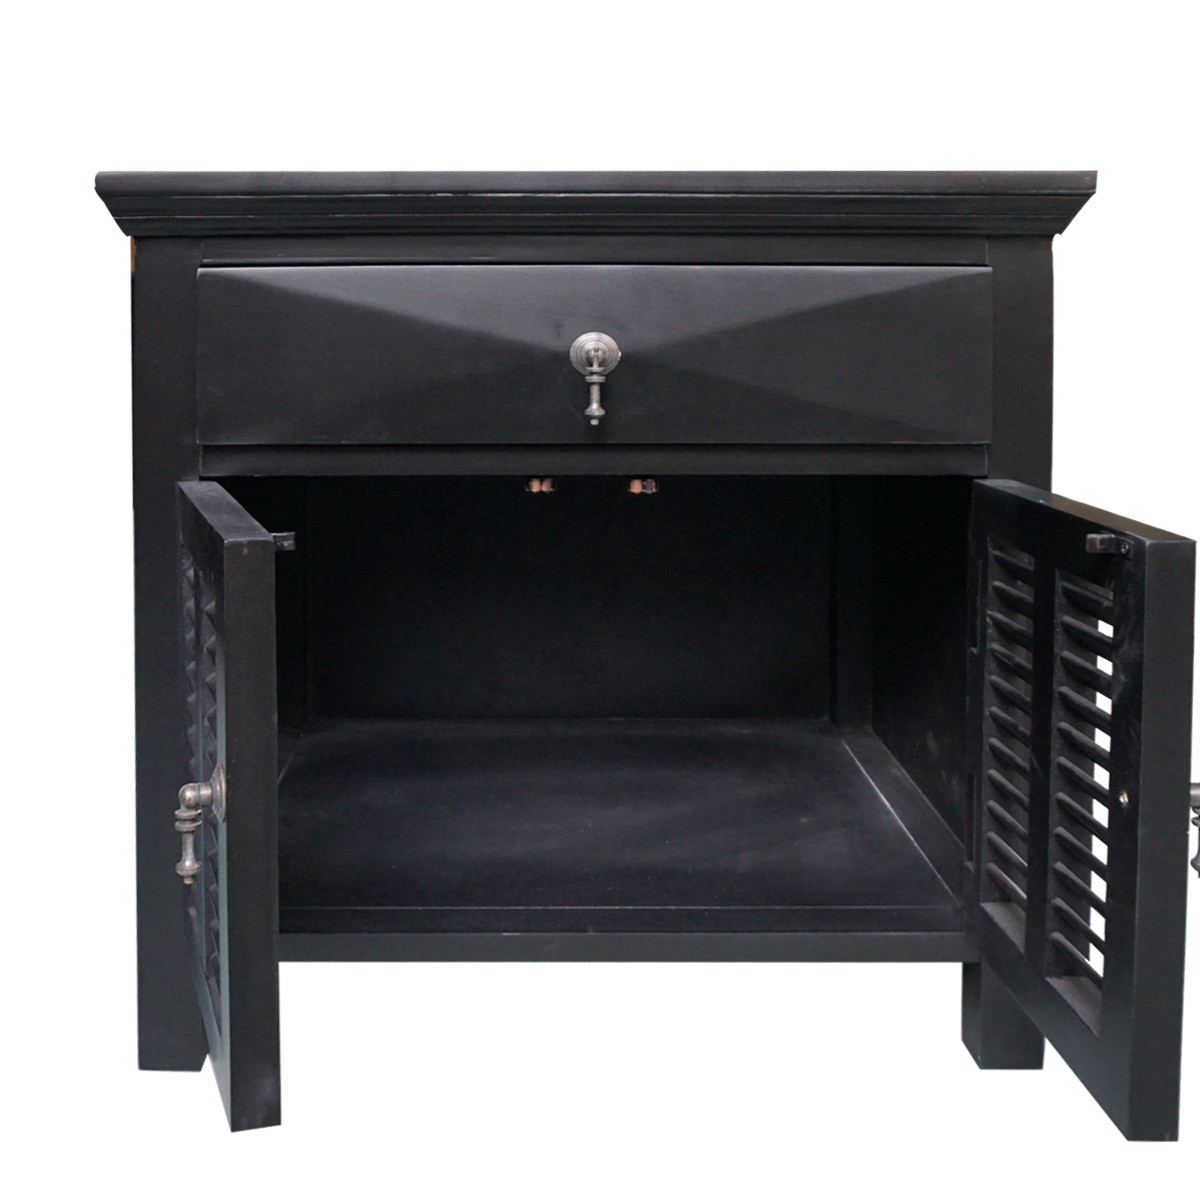 Provincial Bedside Tables Hamptons Louvre Black Bedside Table 1 Drawer With Door